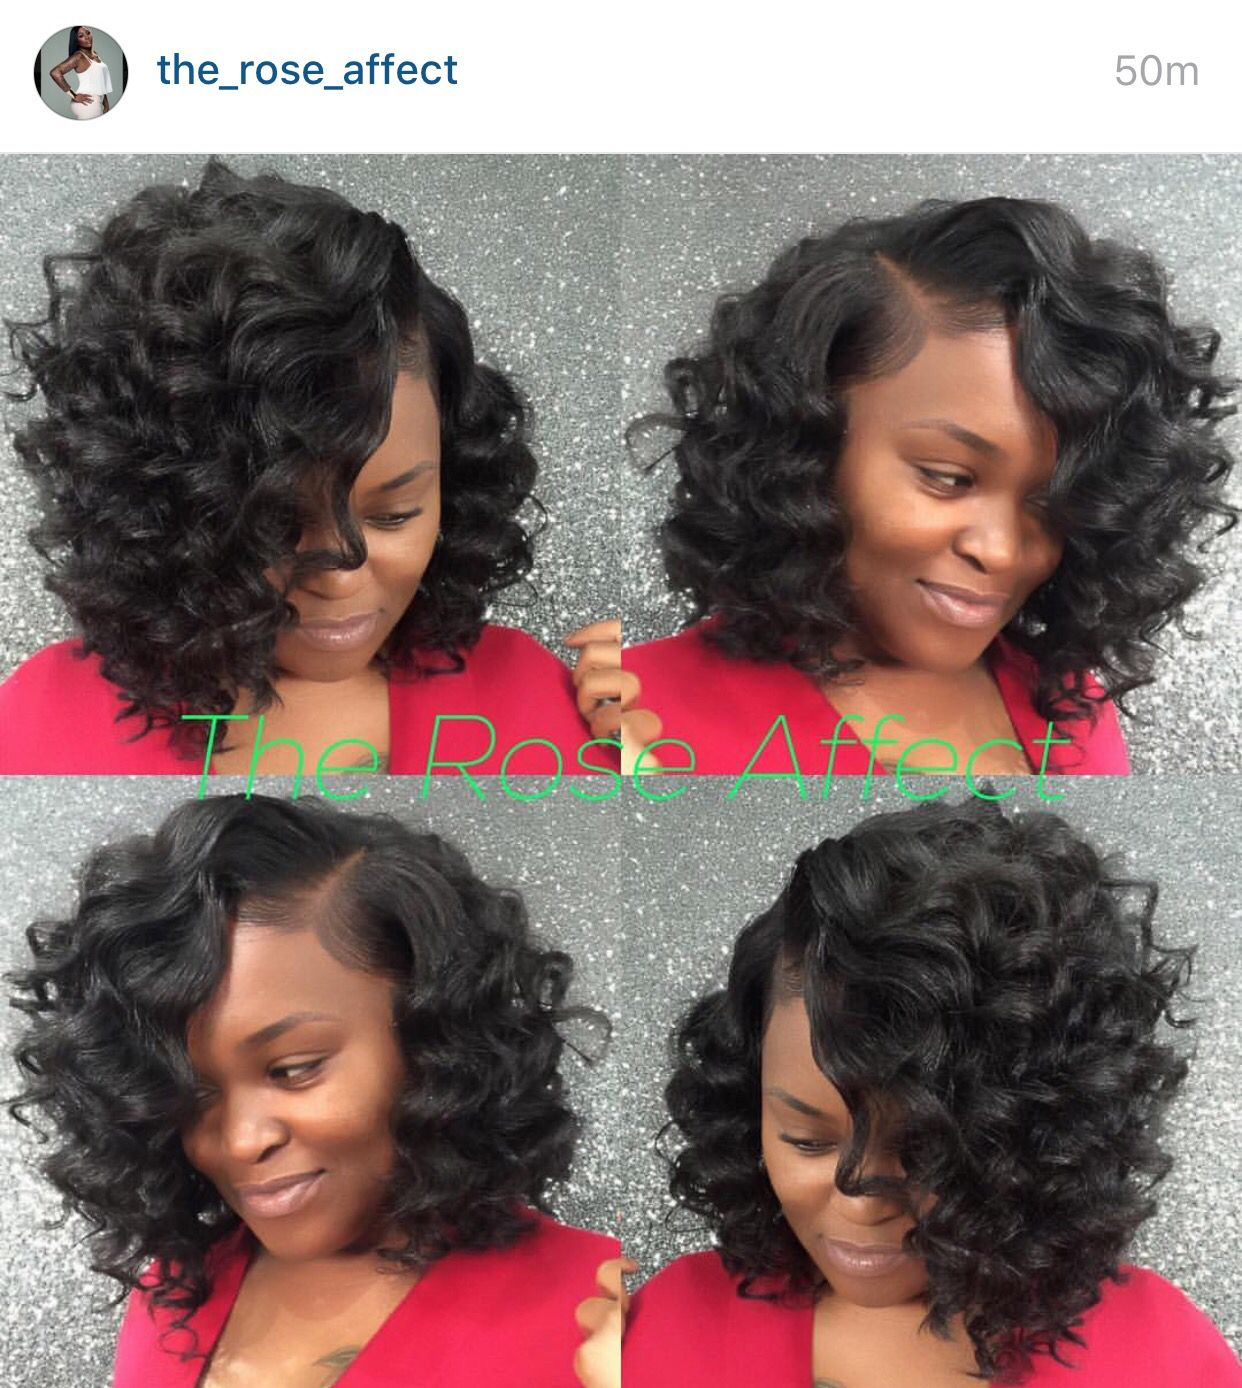 Pin By Tsr Services Trendy On Hairstyles To Try: Peinados Afro, Cabello